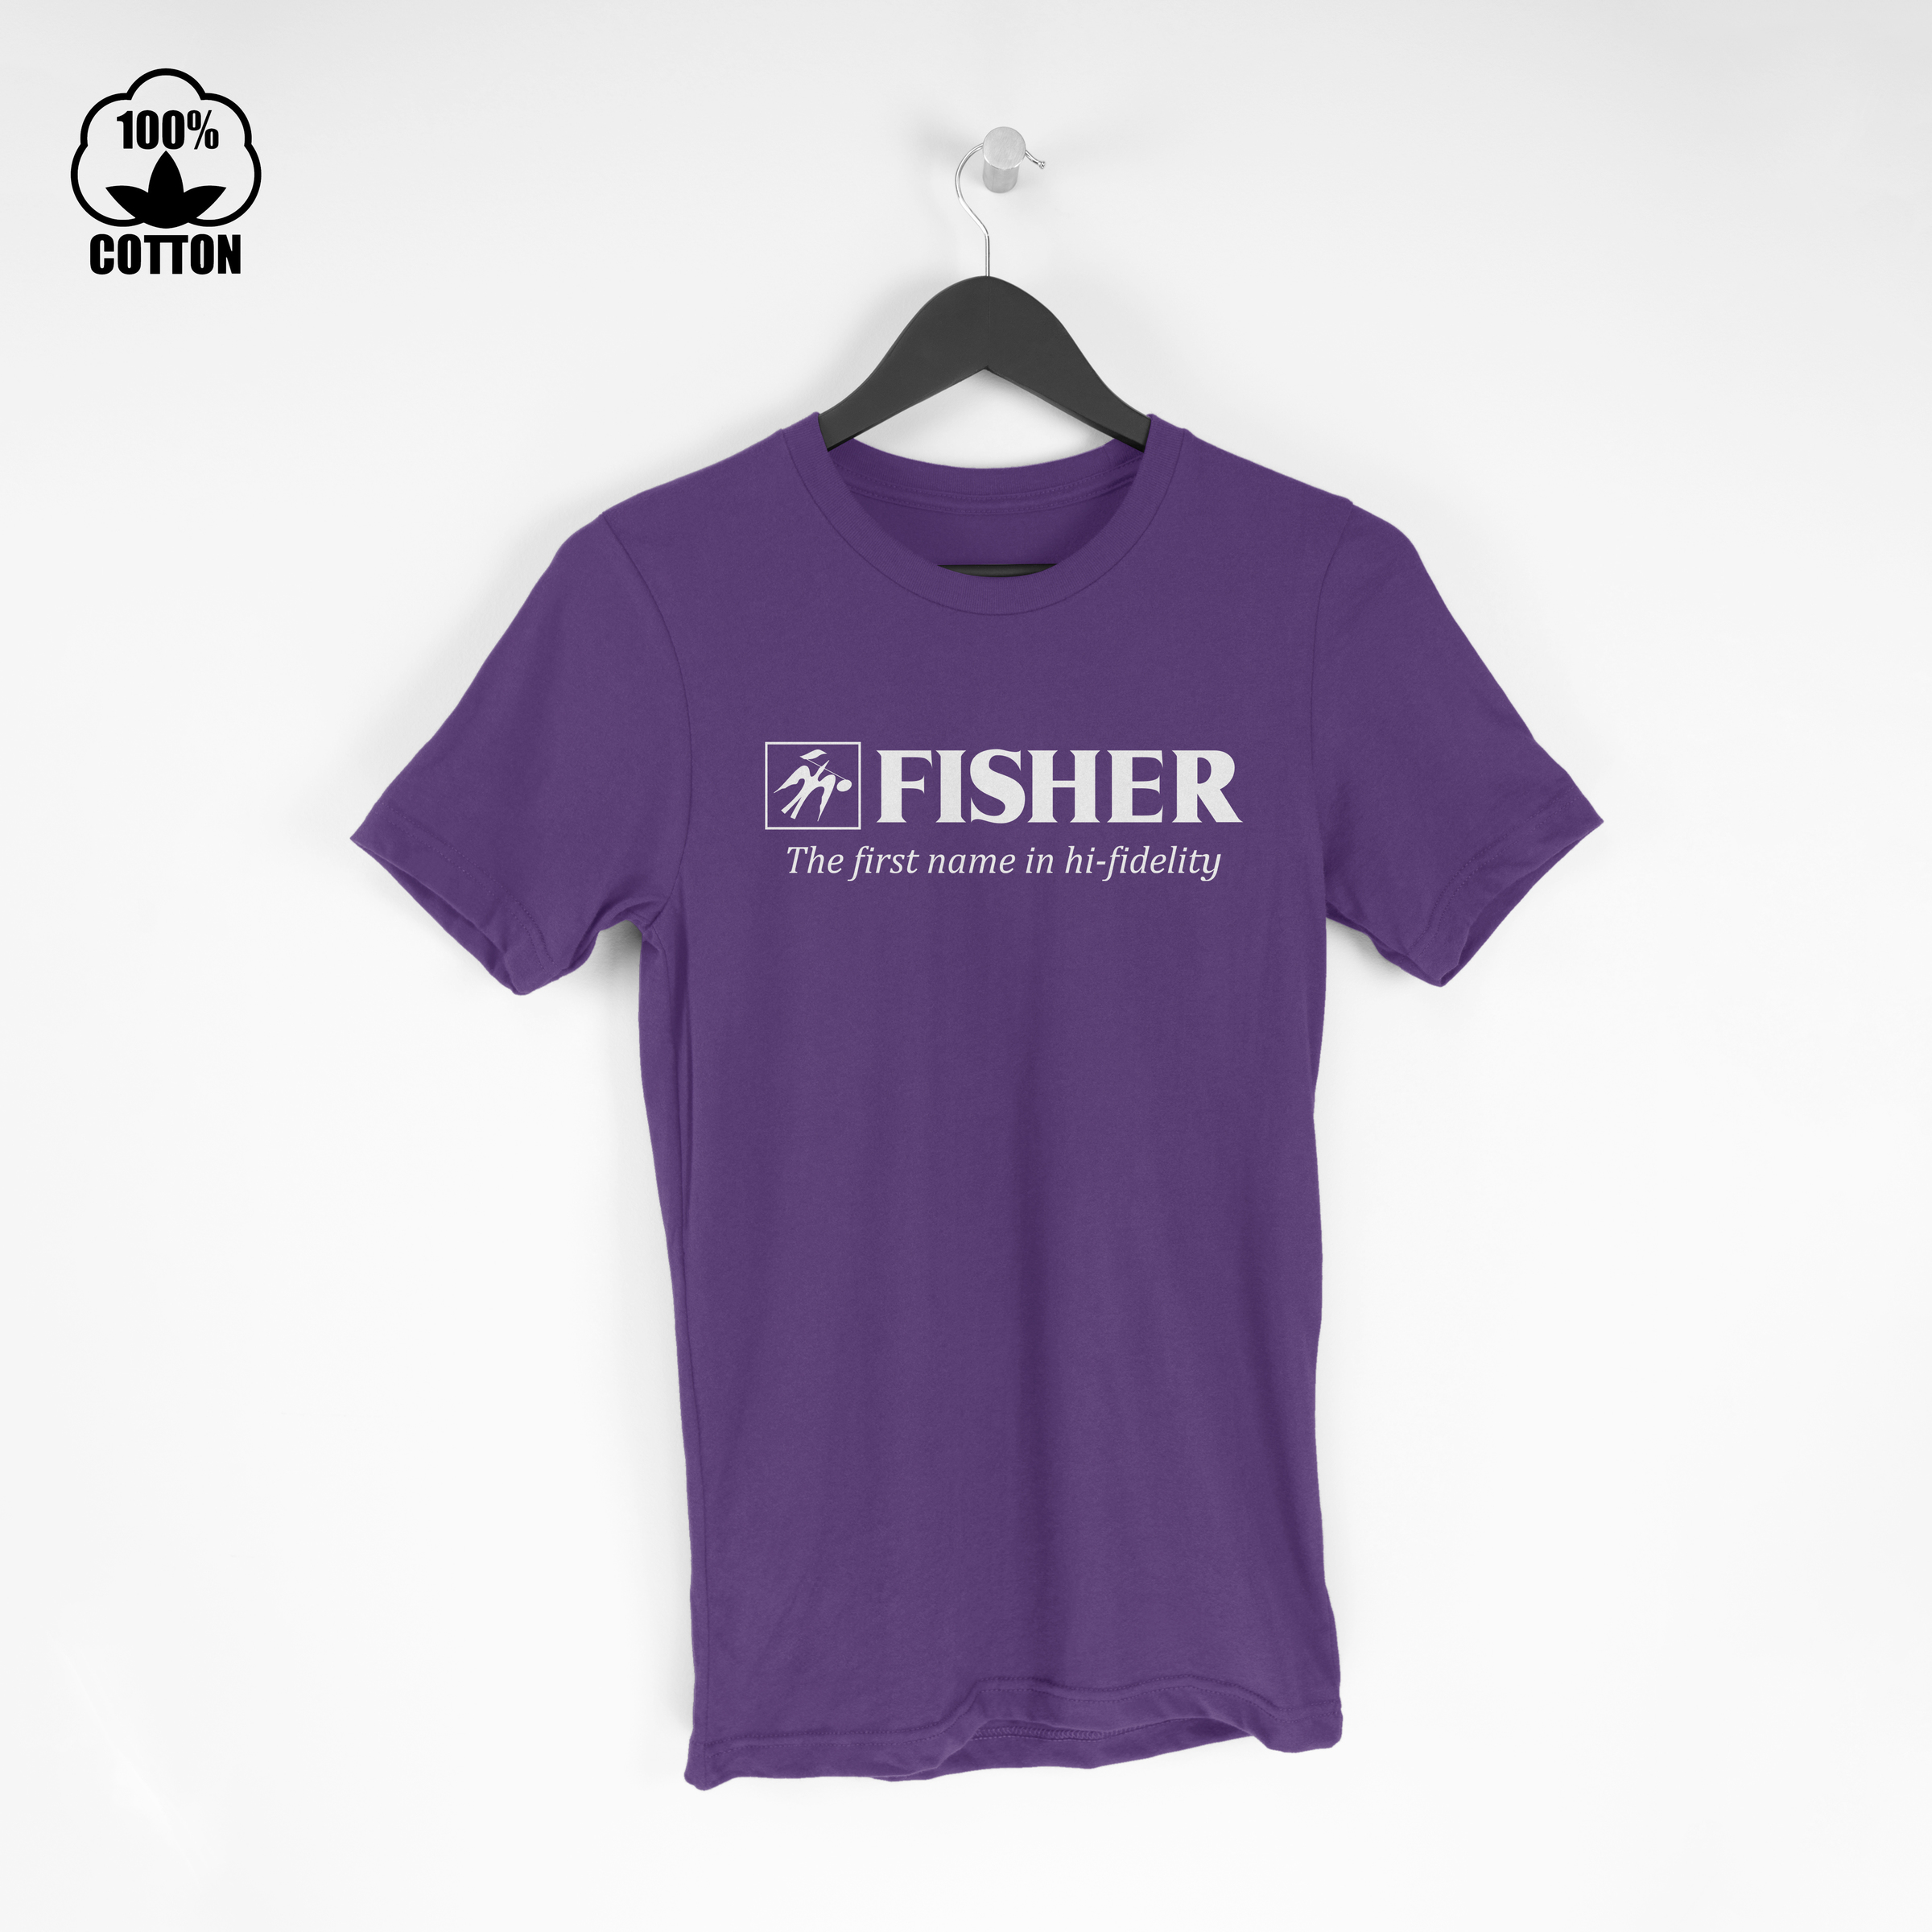 Fisher Logo Electronics Audio Stereo Components Hi-Fi Amplifier Tuner  Tshirt Size M-XXL USA BlueViolet.jpg